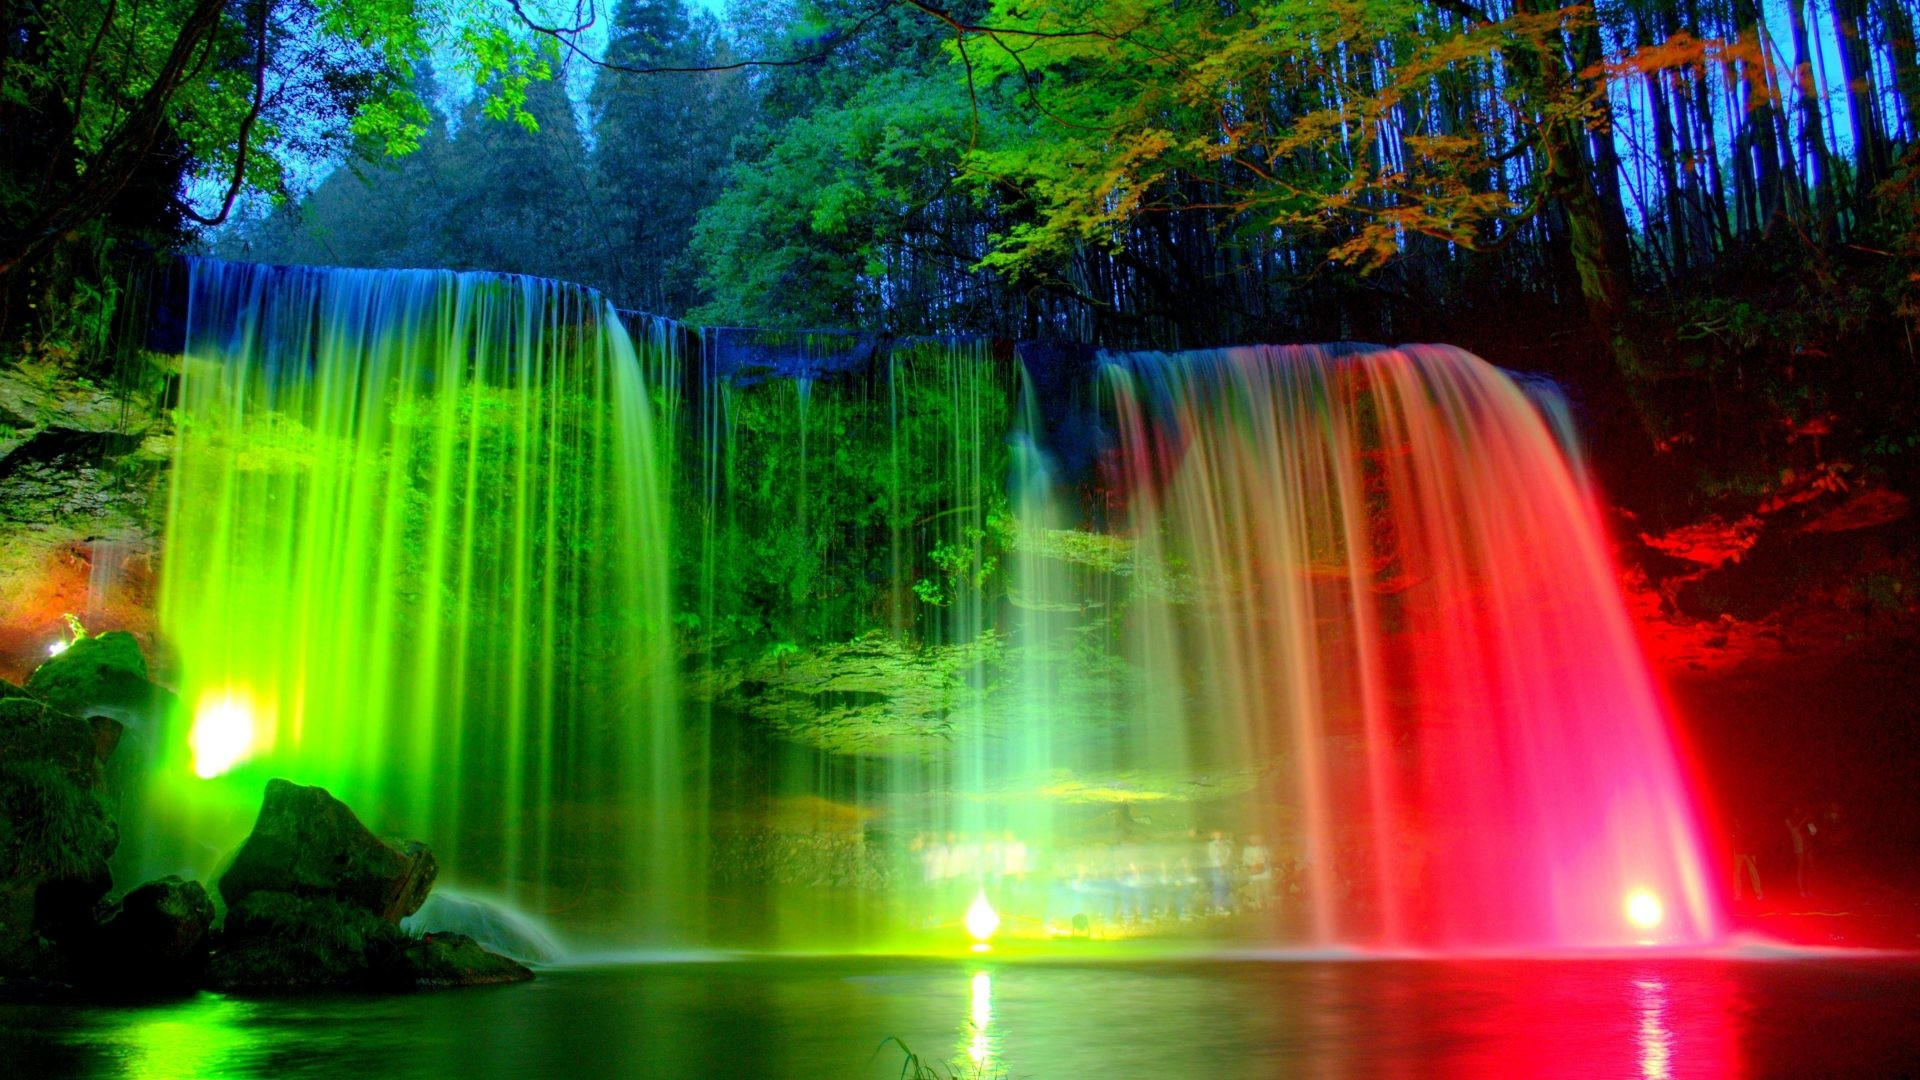 1920x1080 Hd Wallpapers Waterfall: Desktop Wallpapers Waterfalls With Rainbow (34+ Images